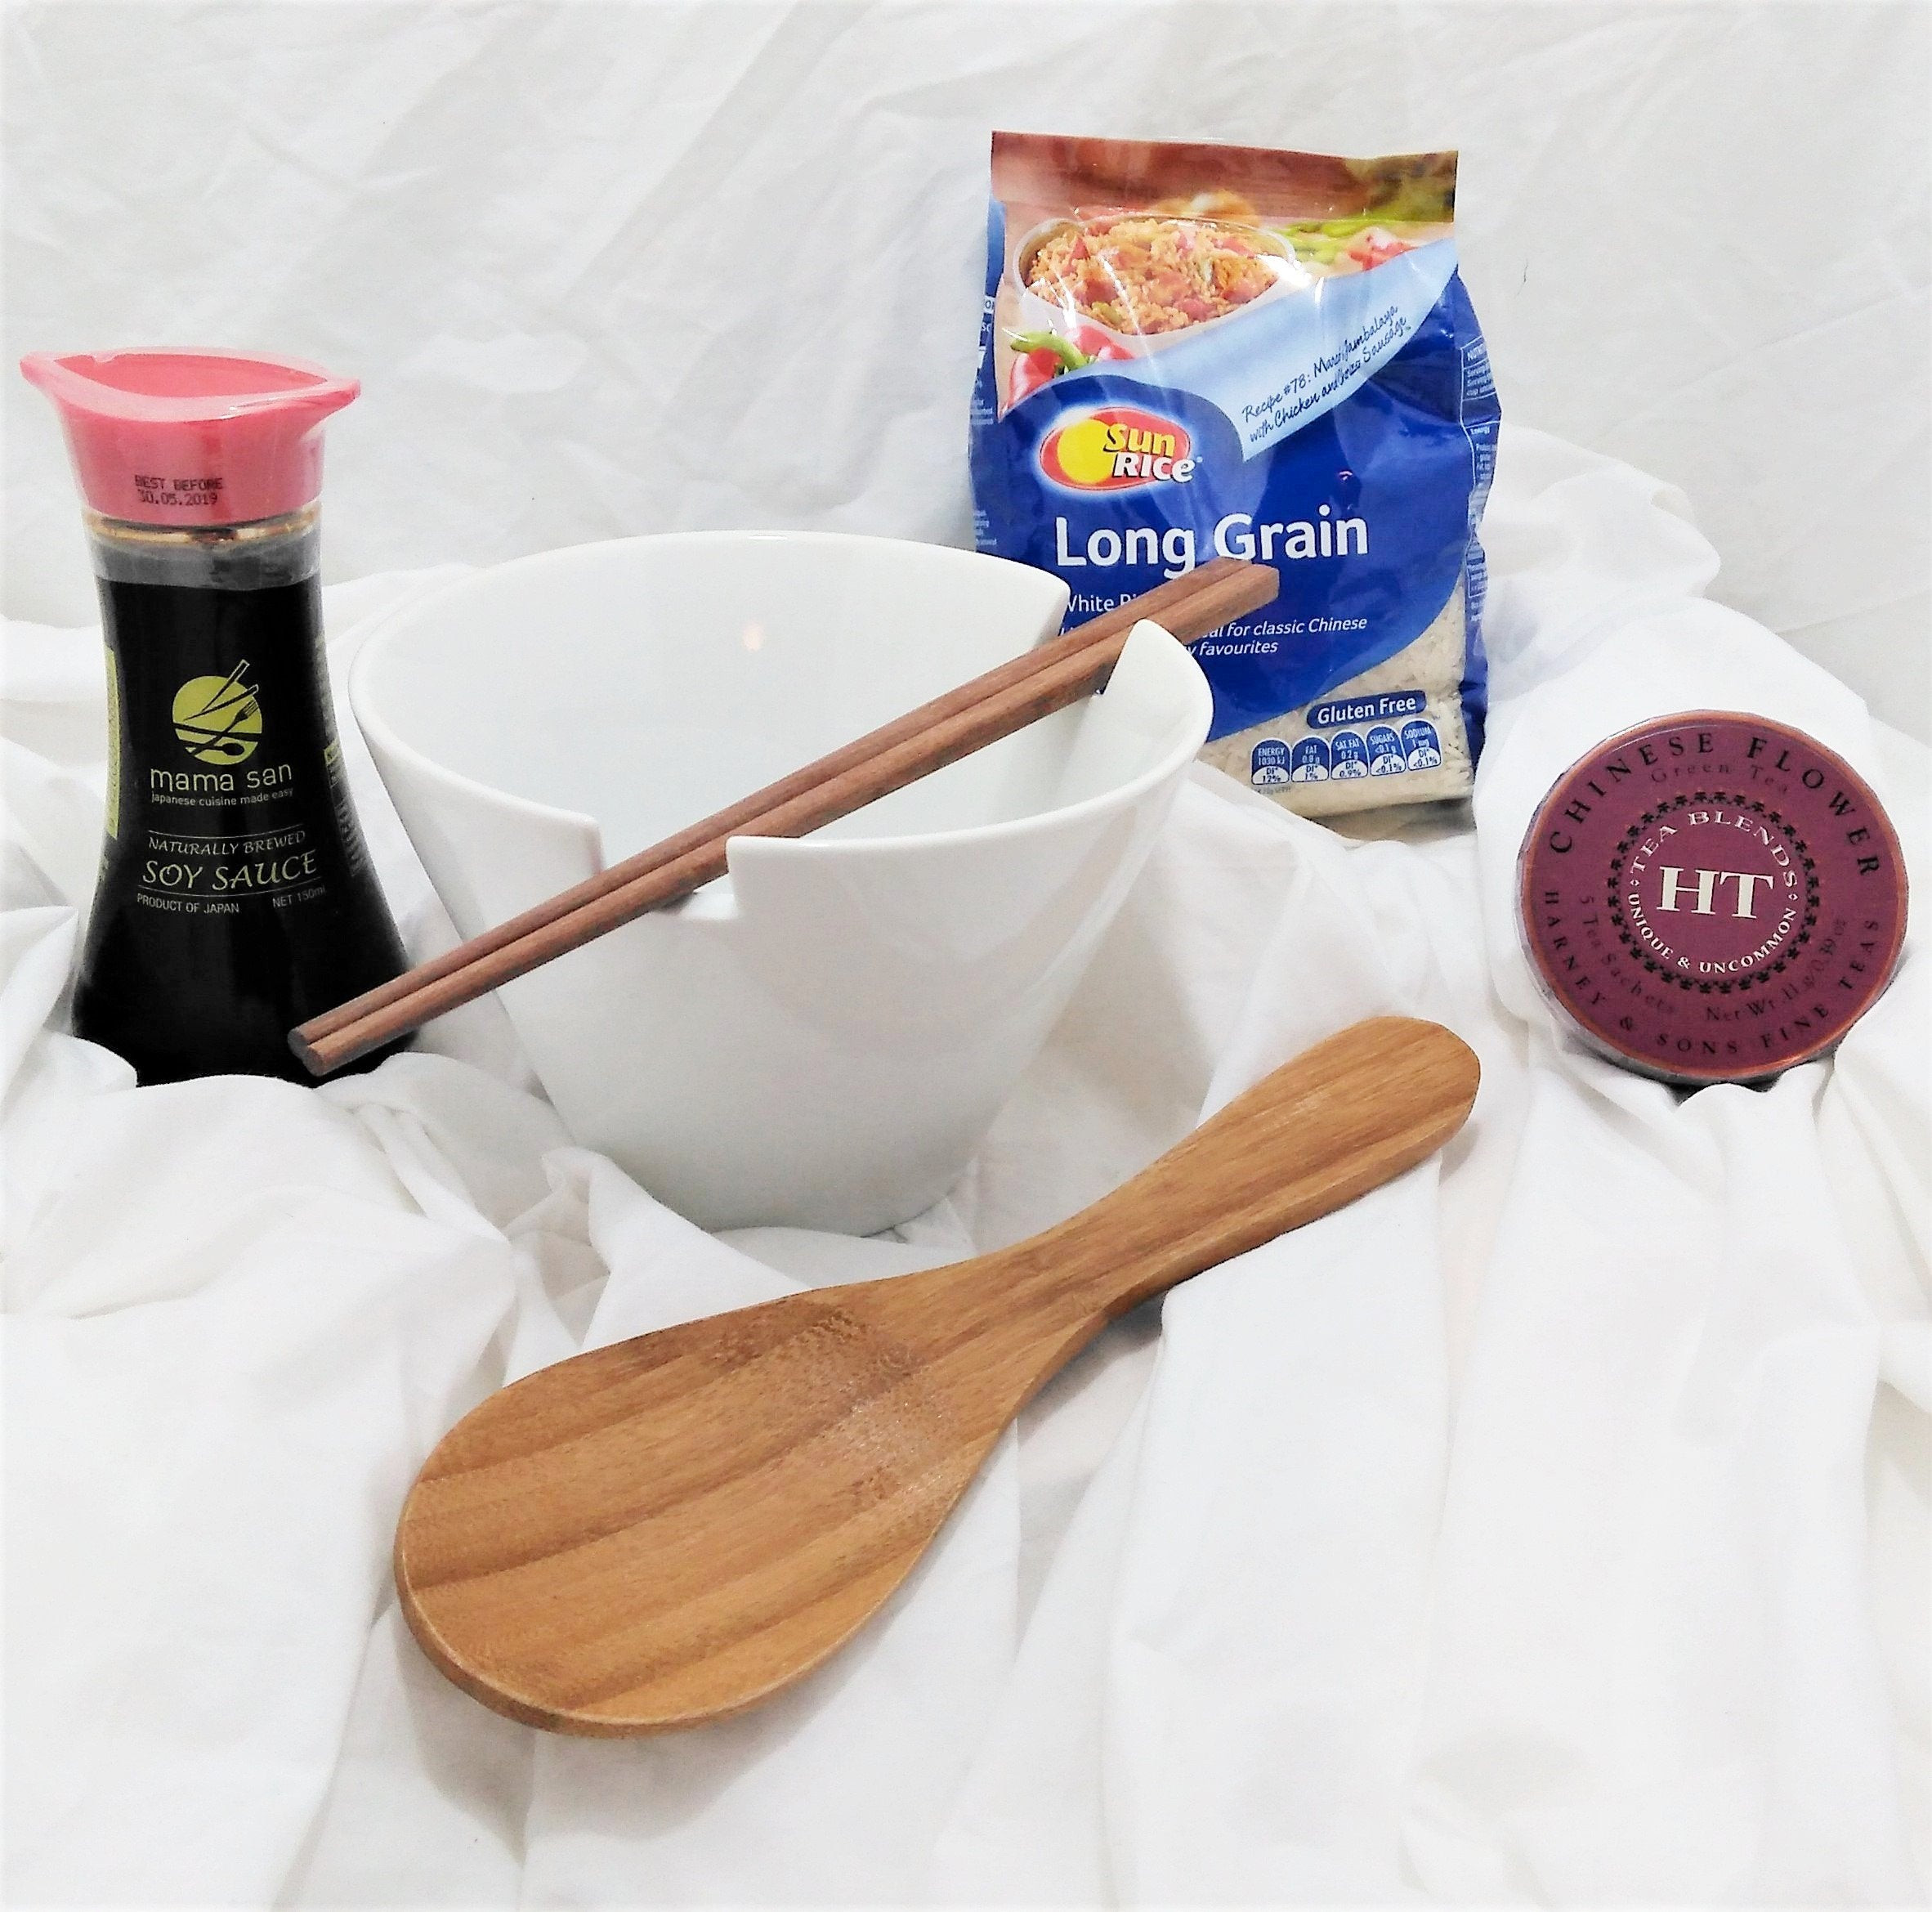 Oriental rice bowl gift - a 15 cm white procelain rice bowl with chopsticks that rest in the bowl cut-outs, Chinese flower green tea, bamboo rice spoon, soy sauce and long grain rice